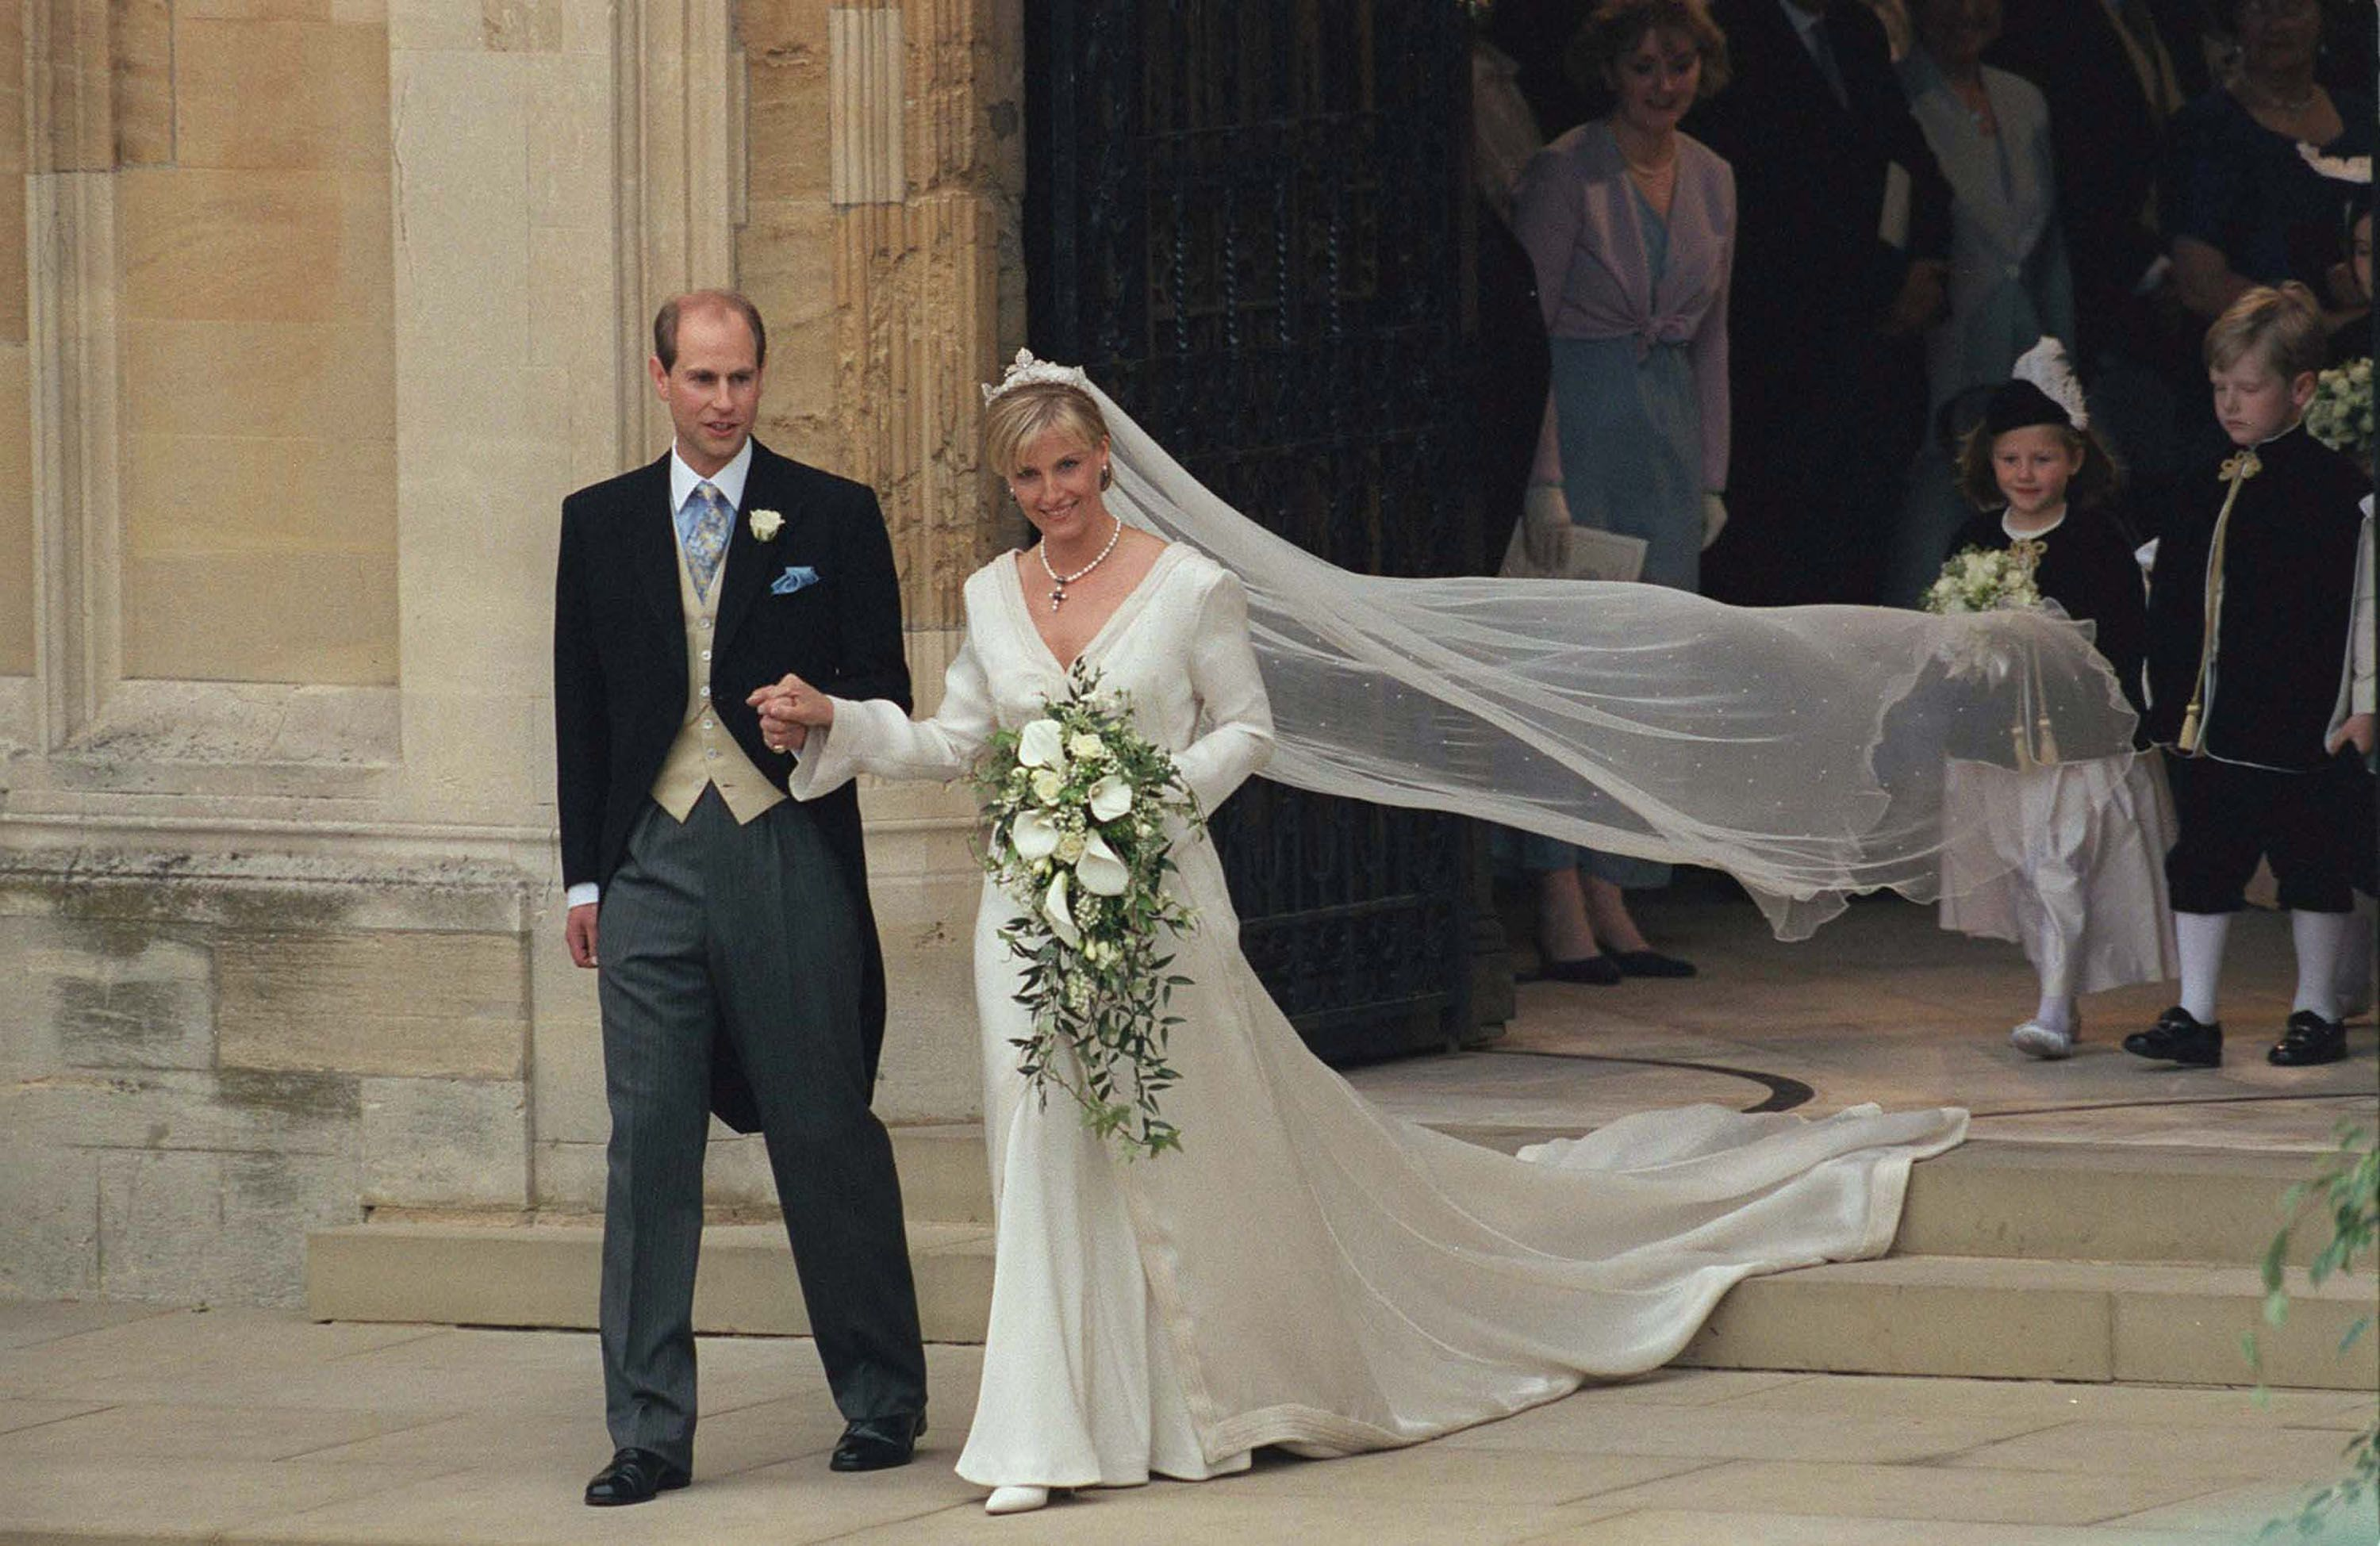 The History Of Royal Weddings At St Georges Chapel At Windsor Castle